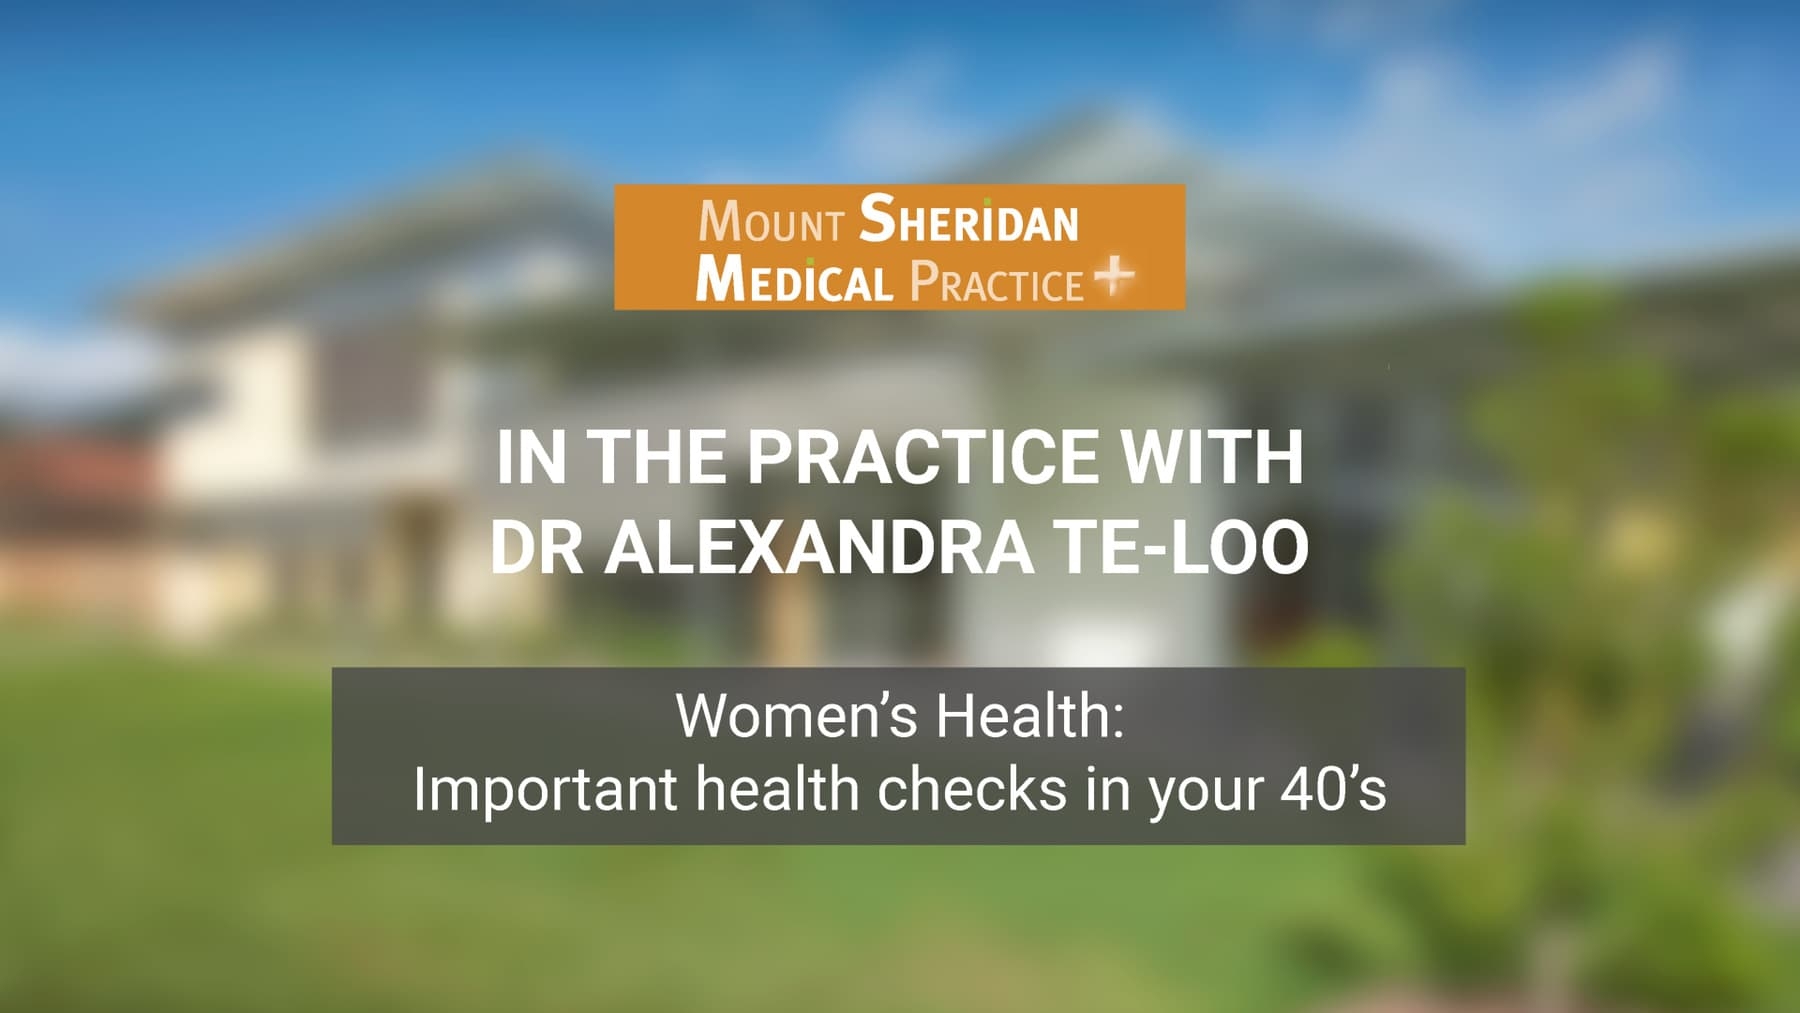 Women's Health: Important health checks in your 40's